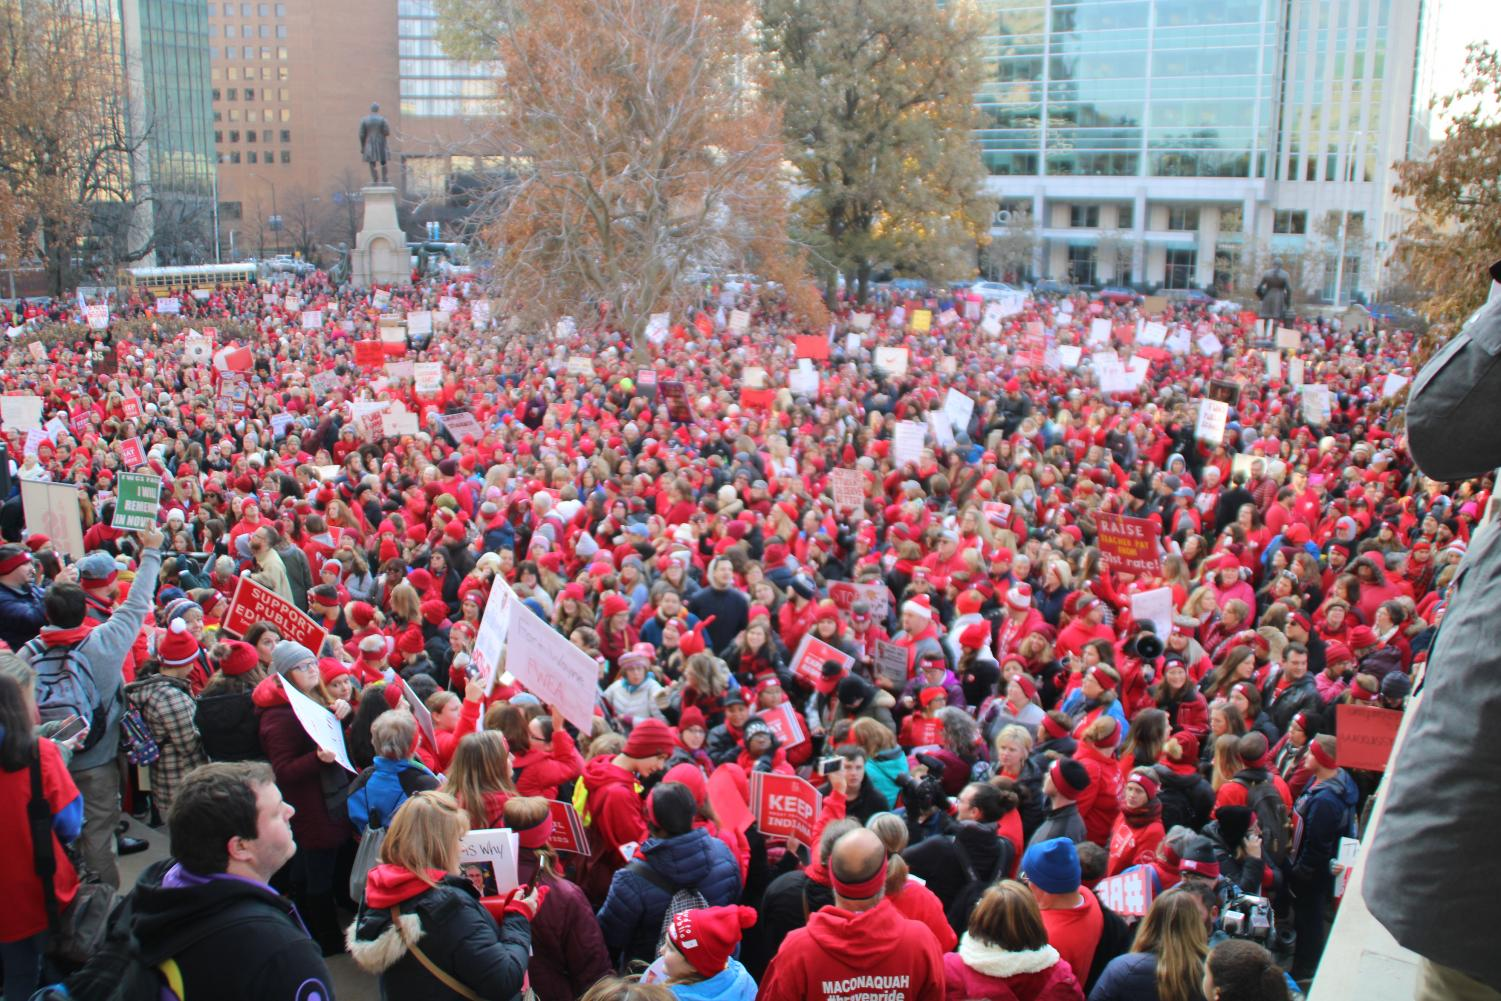 A crowd estimated at 15,000 gathers outside the Statehouse Tuesday morning at the RedforEd rally.